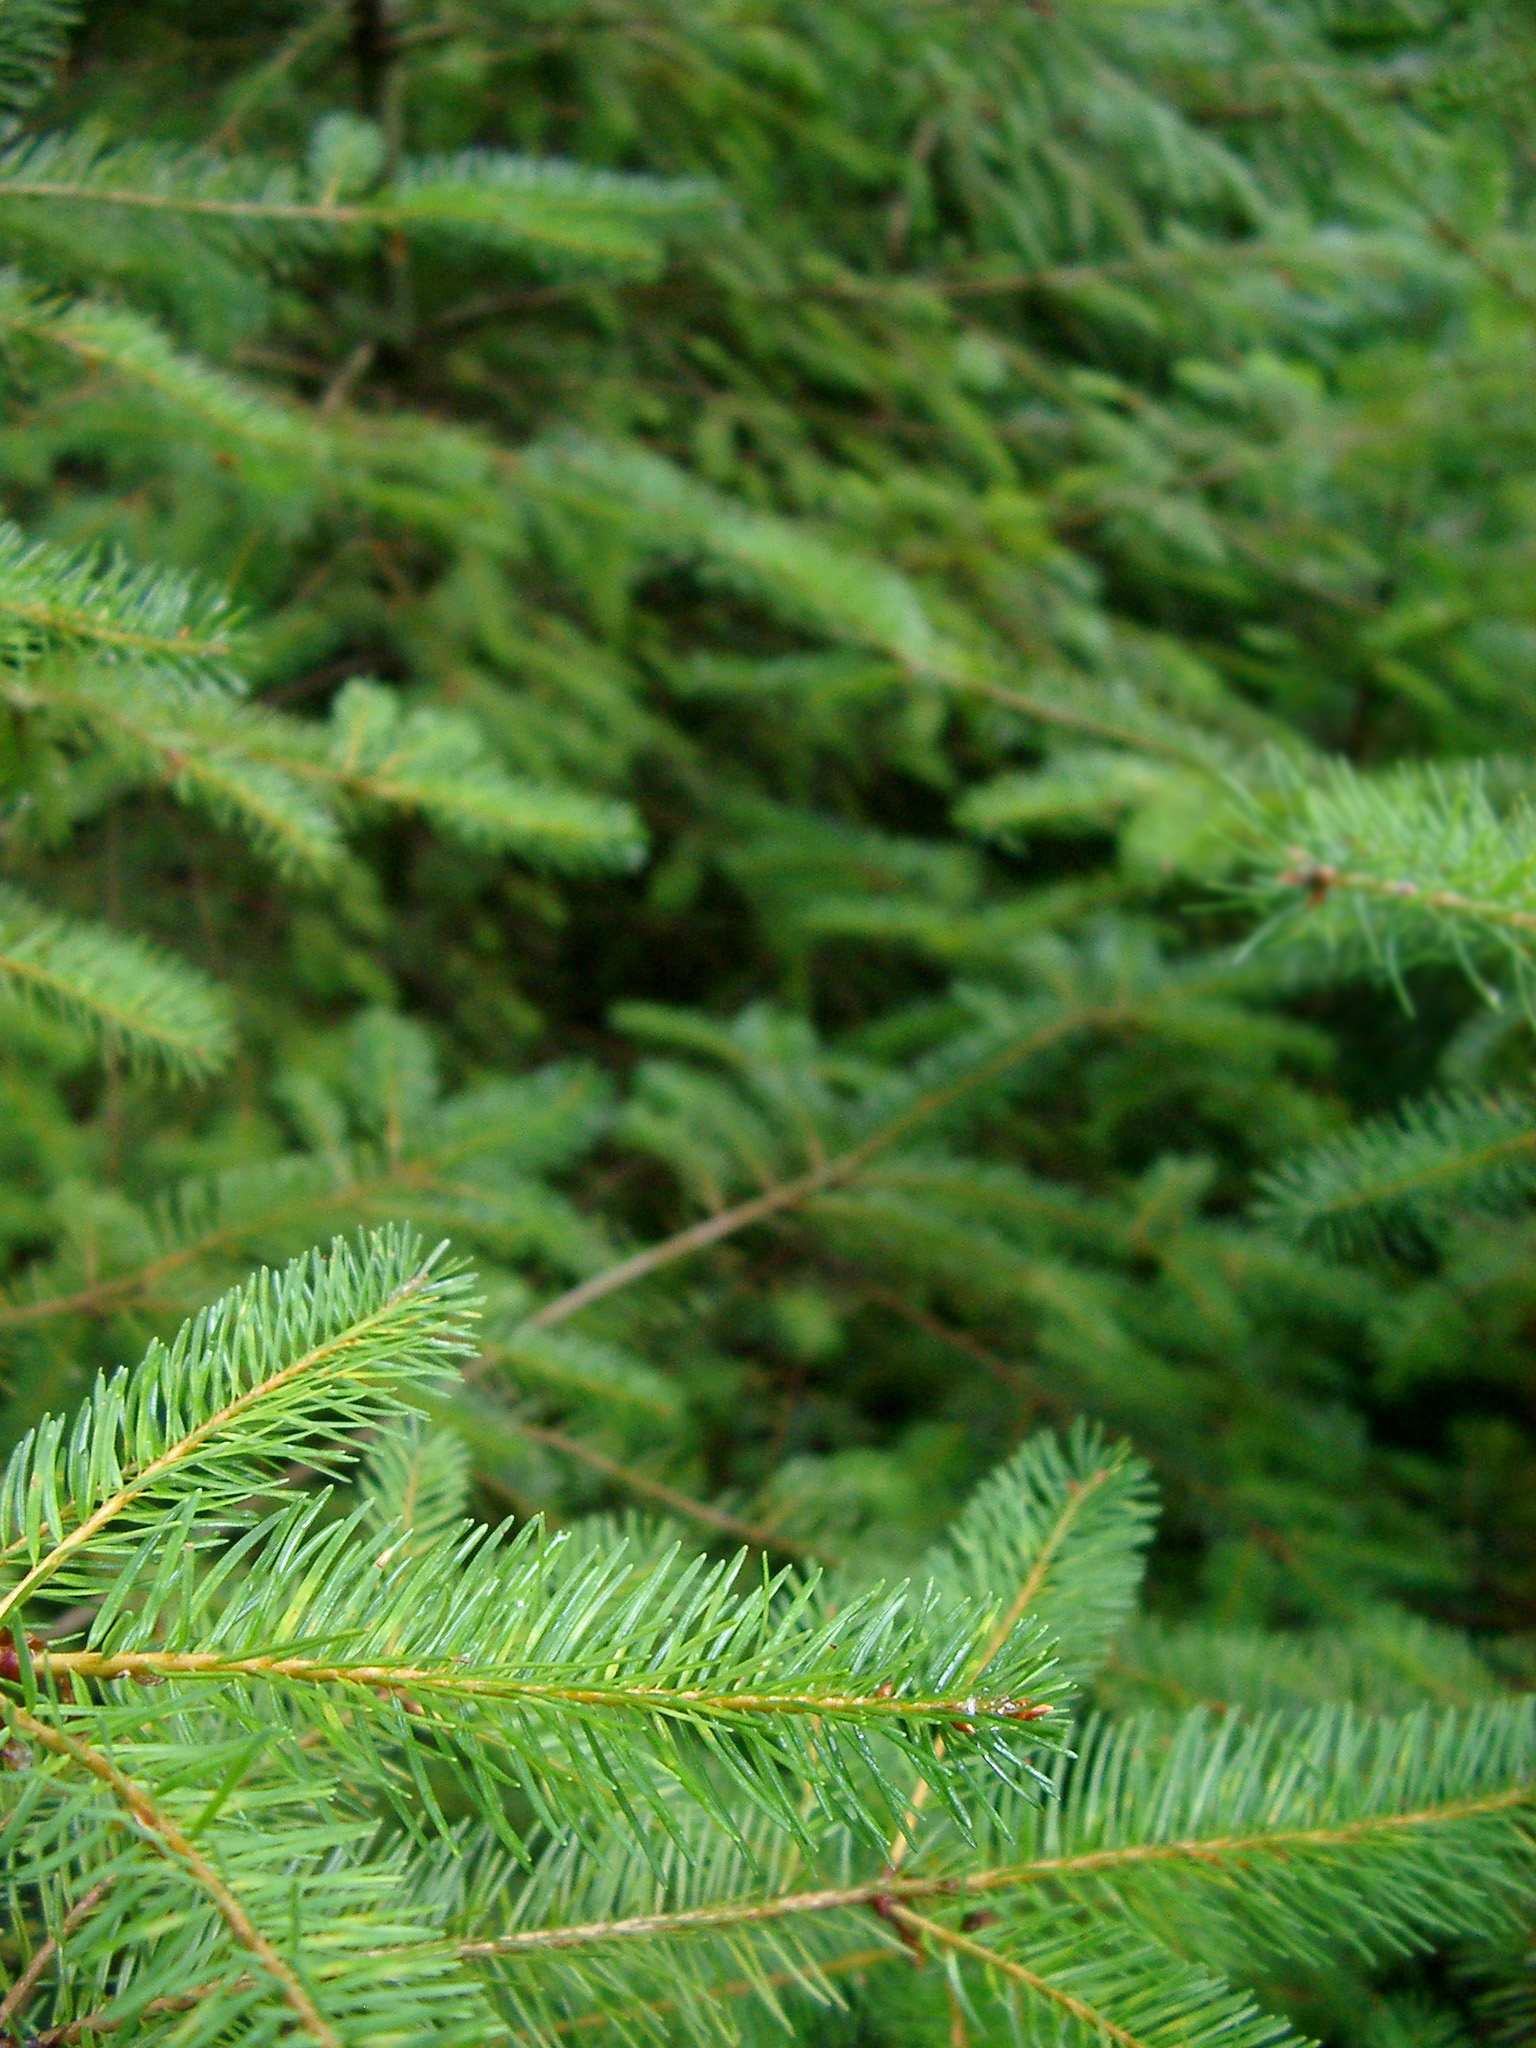 Macro Shot of Plenty Fresh Green Fir Tree Leaves at the Forest